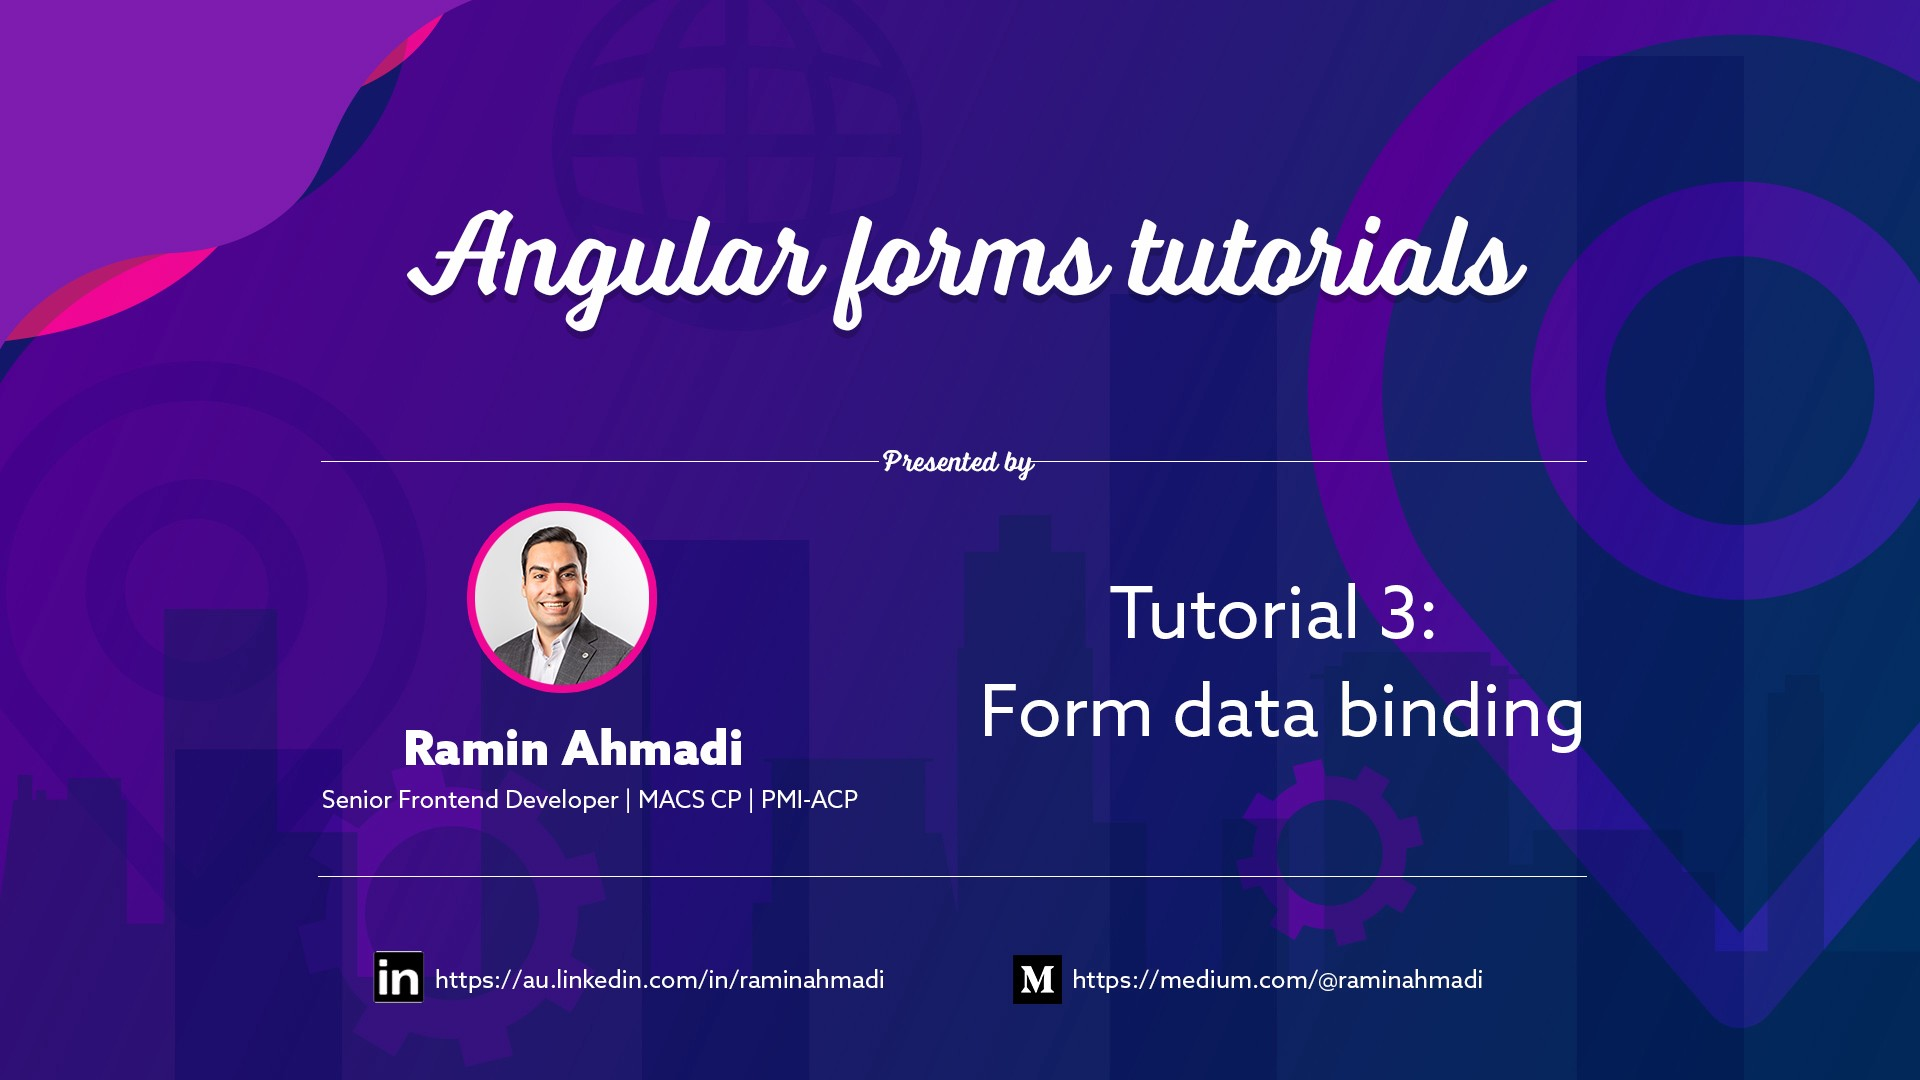 Angular form tutorial presented by Ramin ahmadi https://www.linkedin.com/in/raminahmadi/ or https://medium.com/@raminahmadi